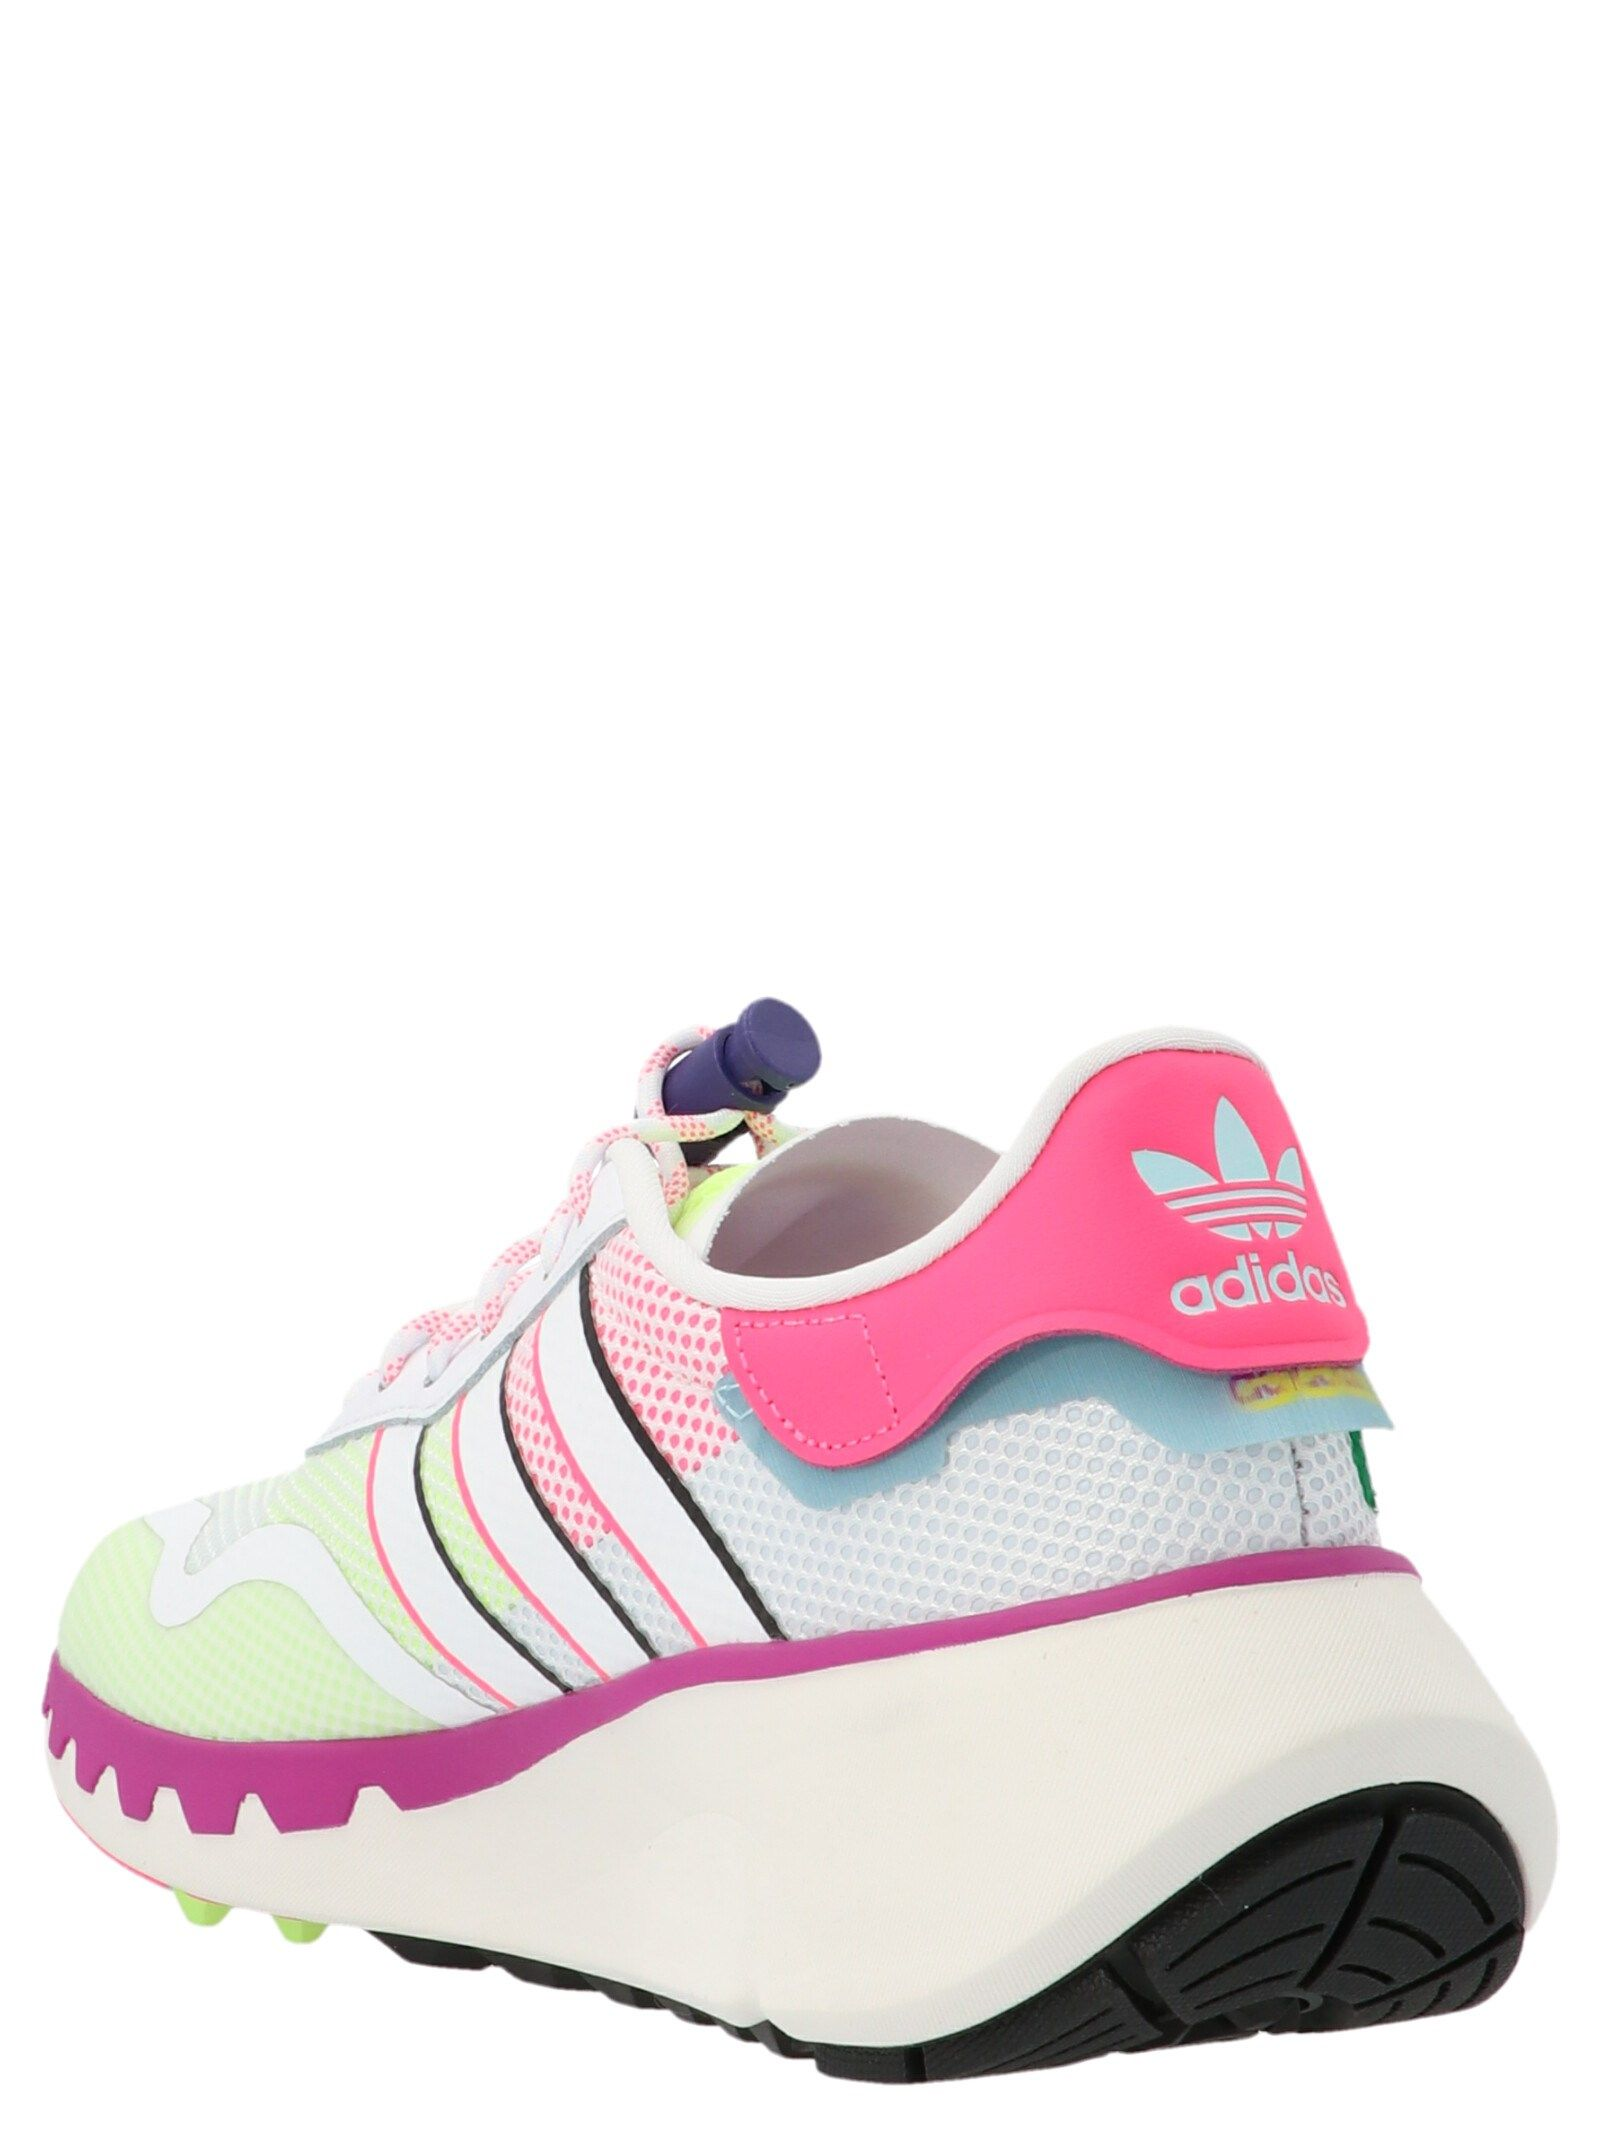 ADIDAS ORIGINALS Sneakers ADIDAS WOMEN'S MULTICOLOR SYNTHETIC FIBERS SNEAKERS